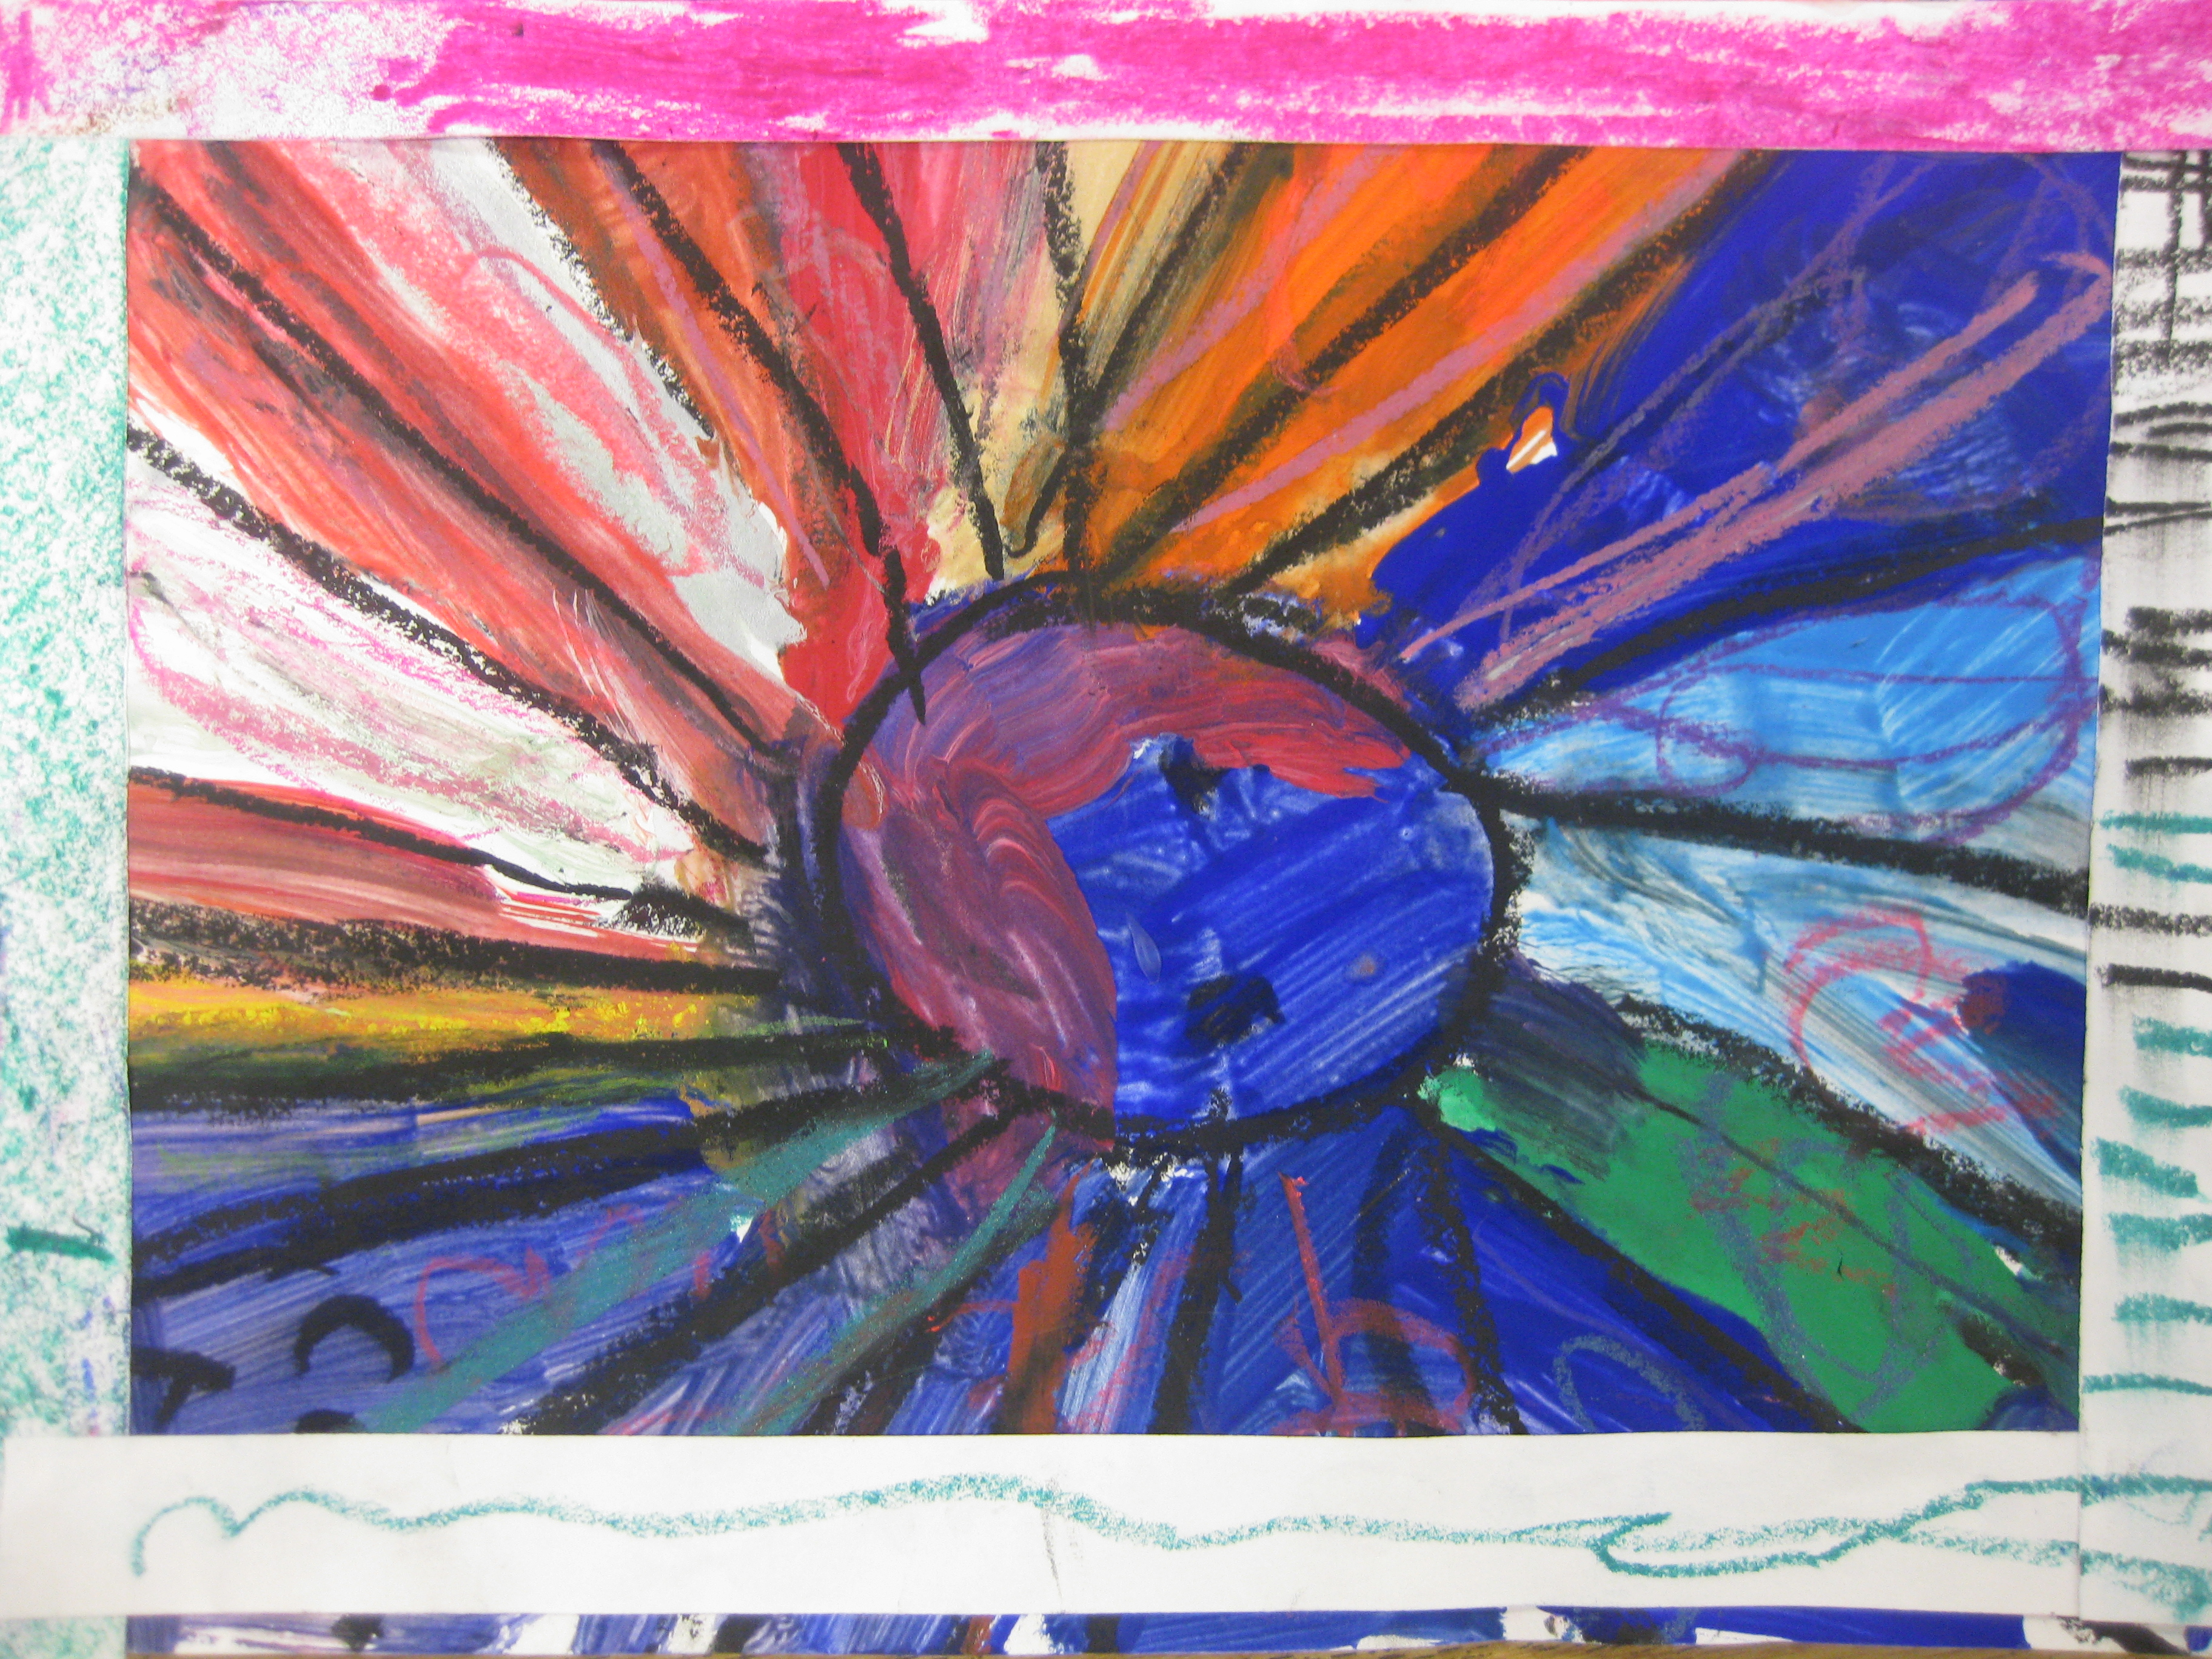 They Created An Abstract Painting And Used Oil Pastels To Add Patterns In Contrasting Colors